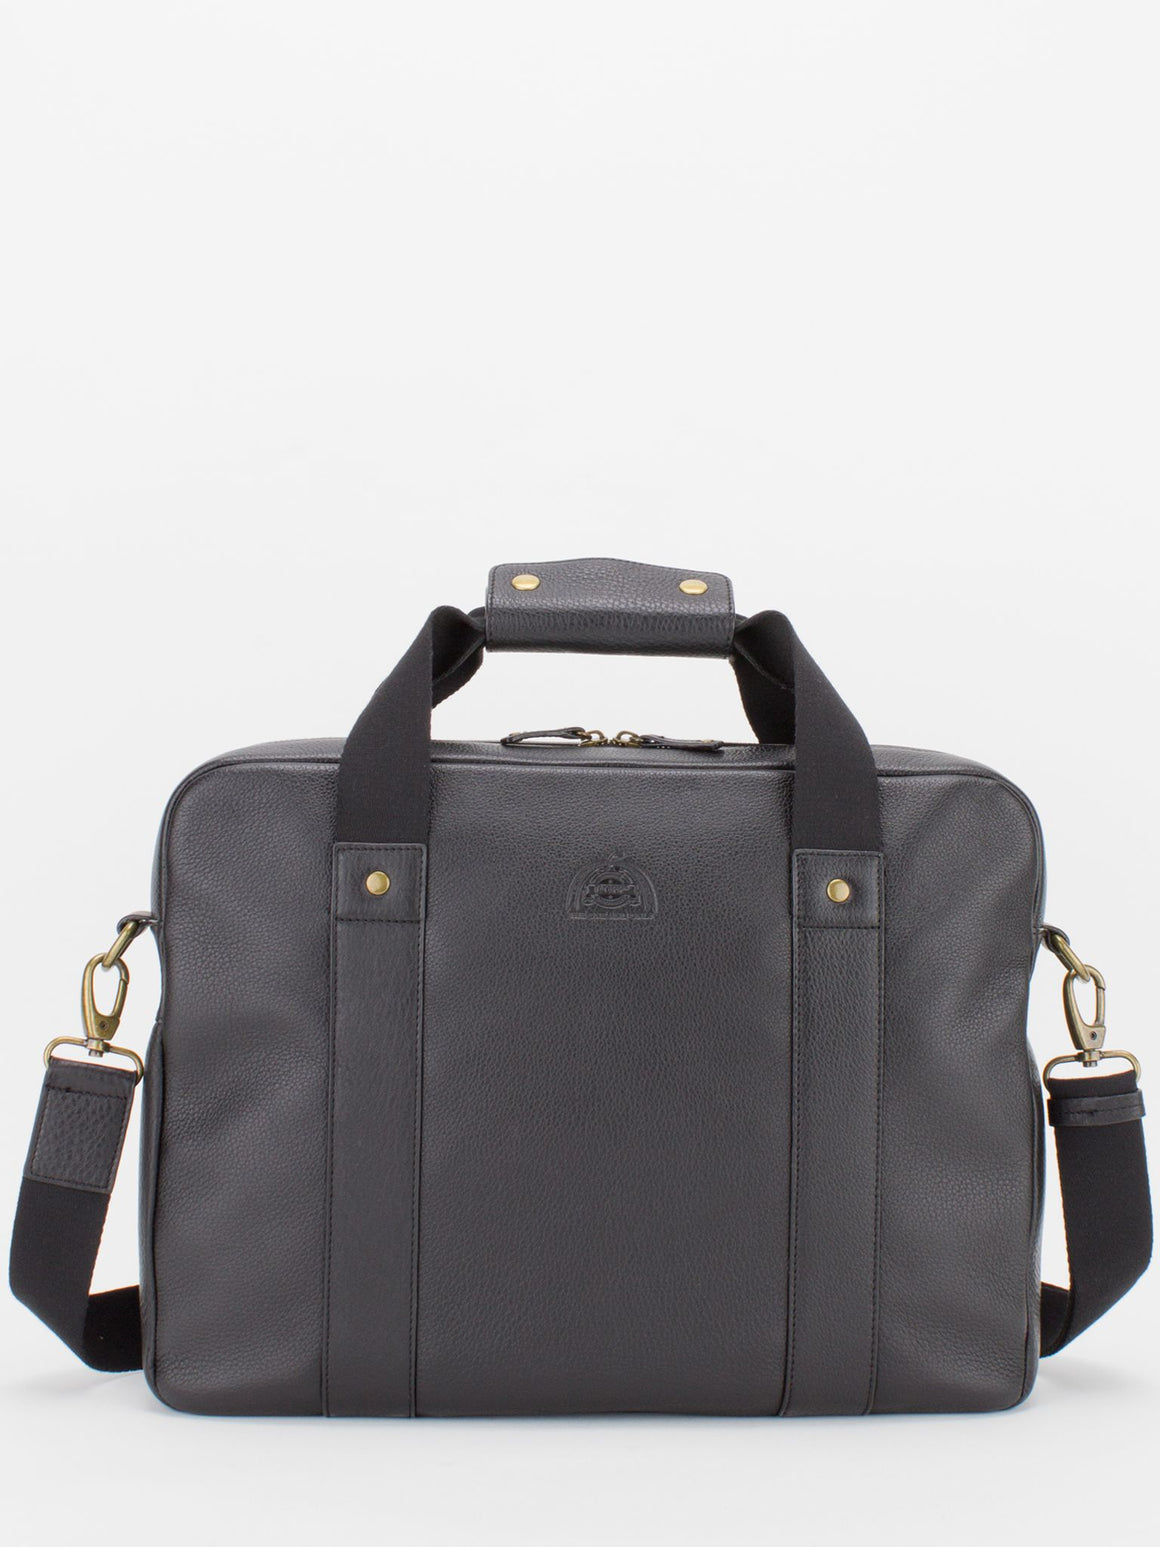 Jayden Pebble Leather Laptop Briefcase - Black